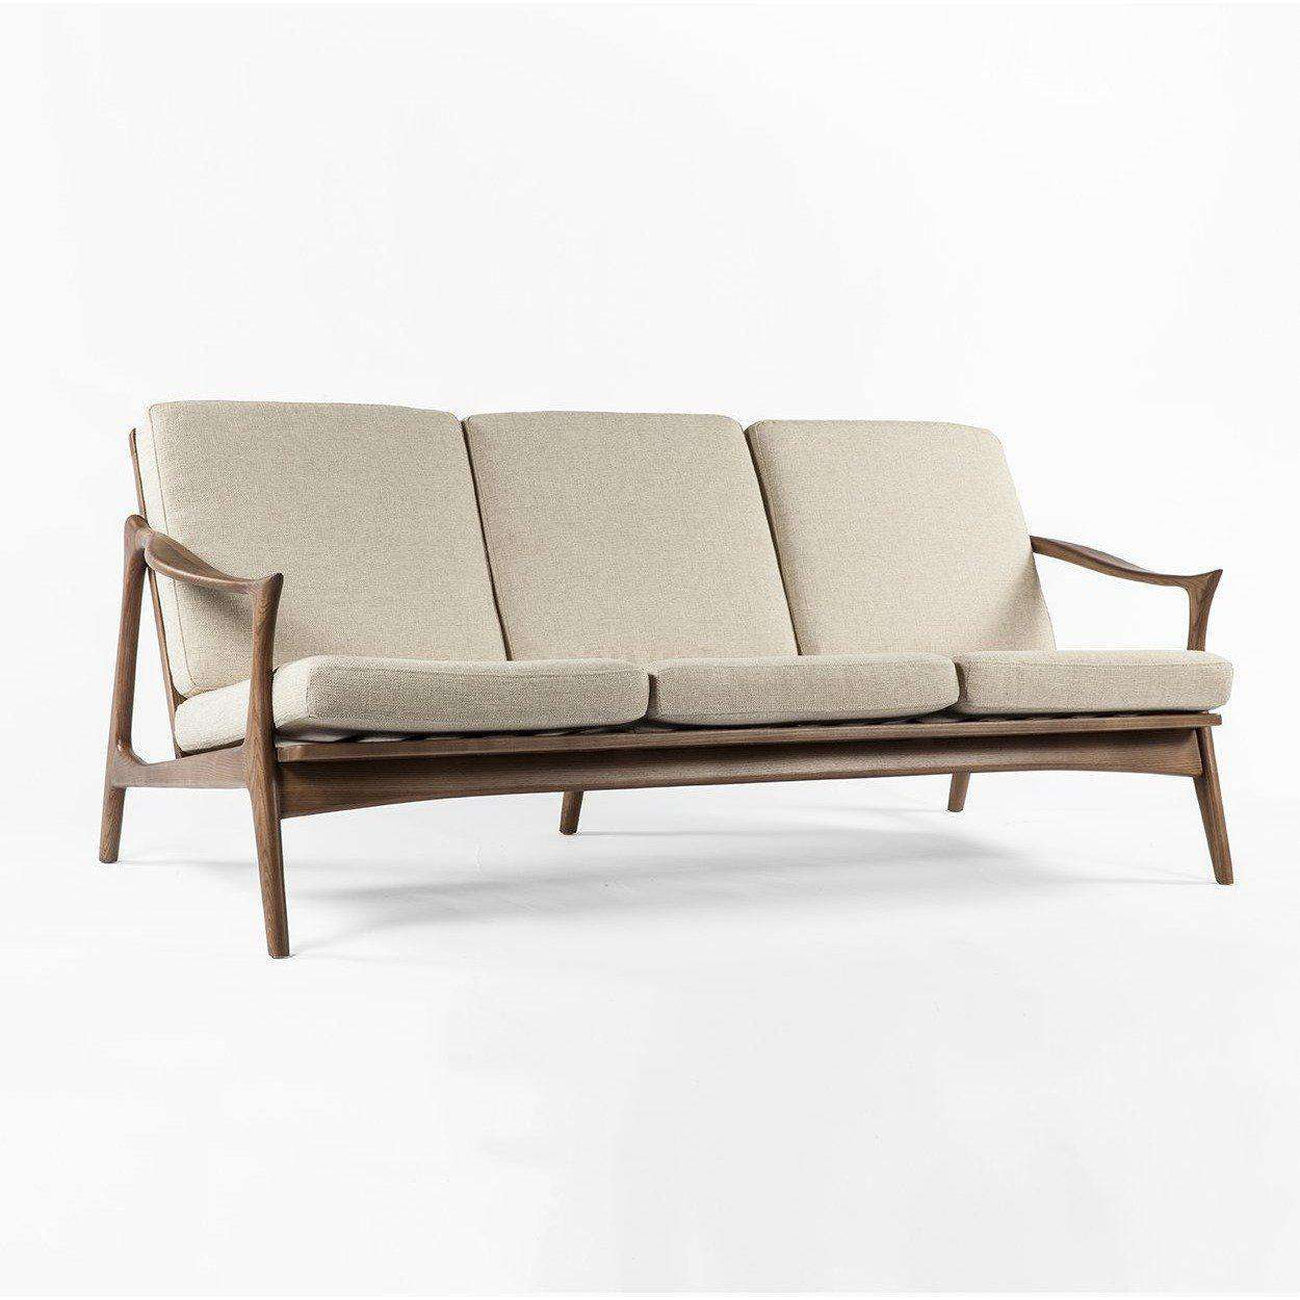 d66bed863 Mid-Century Modern Reproduction Model 711 Danish Sofa - Beige ...